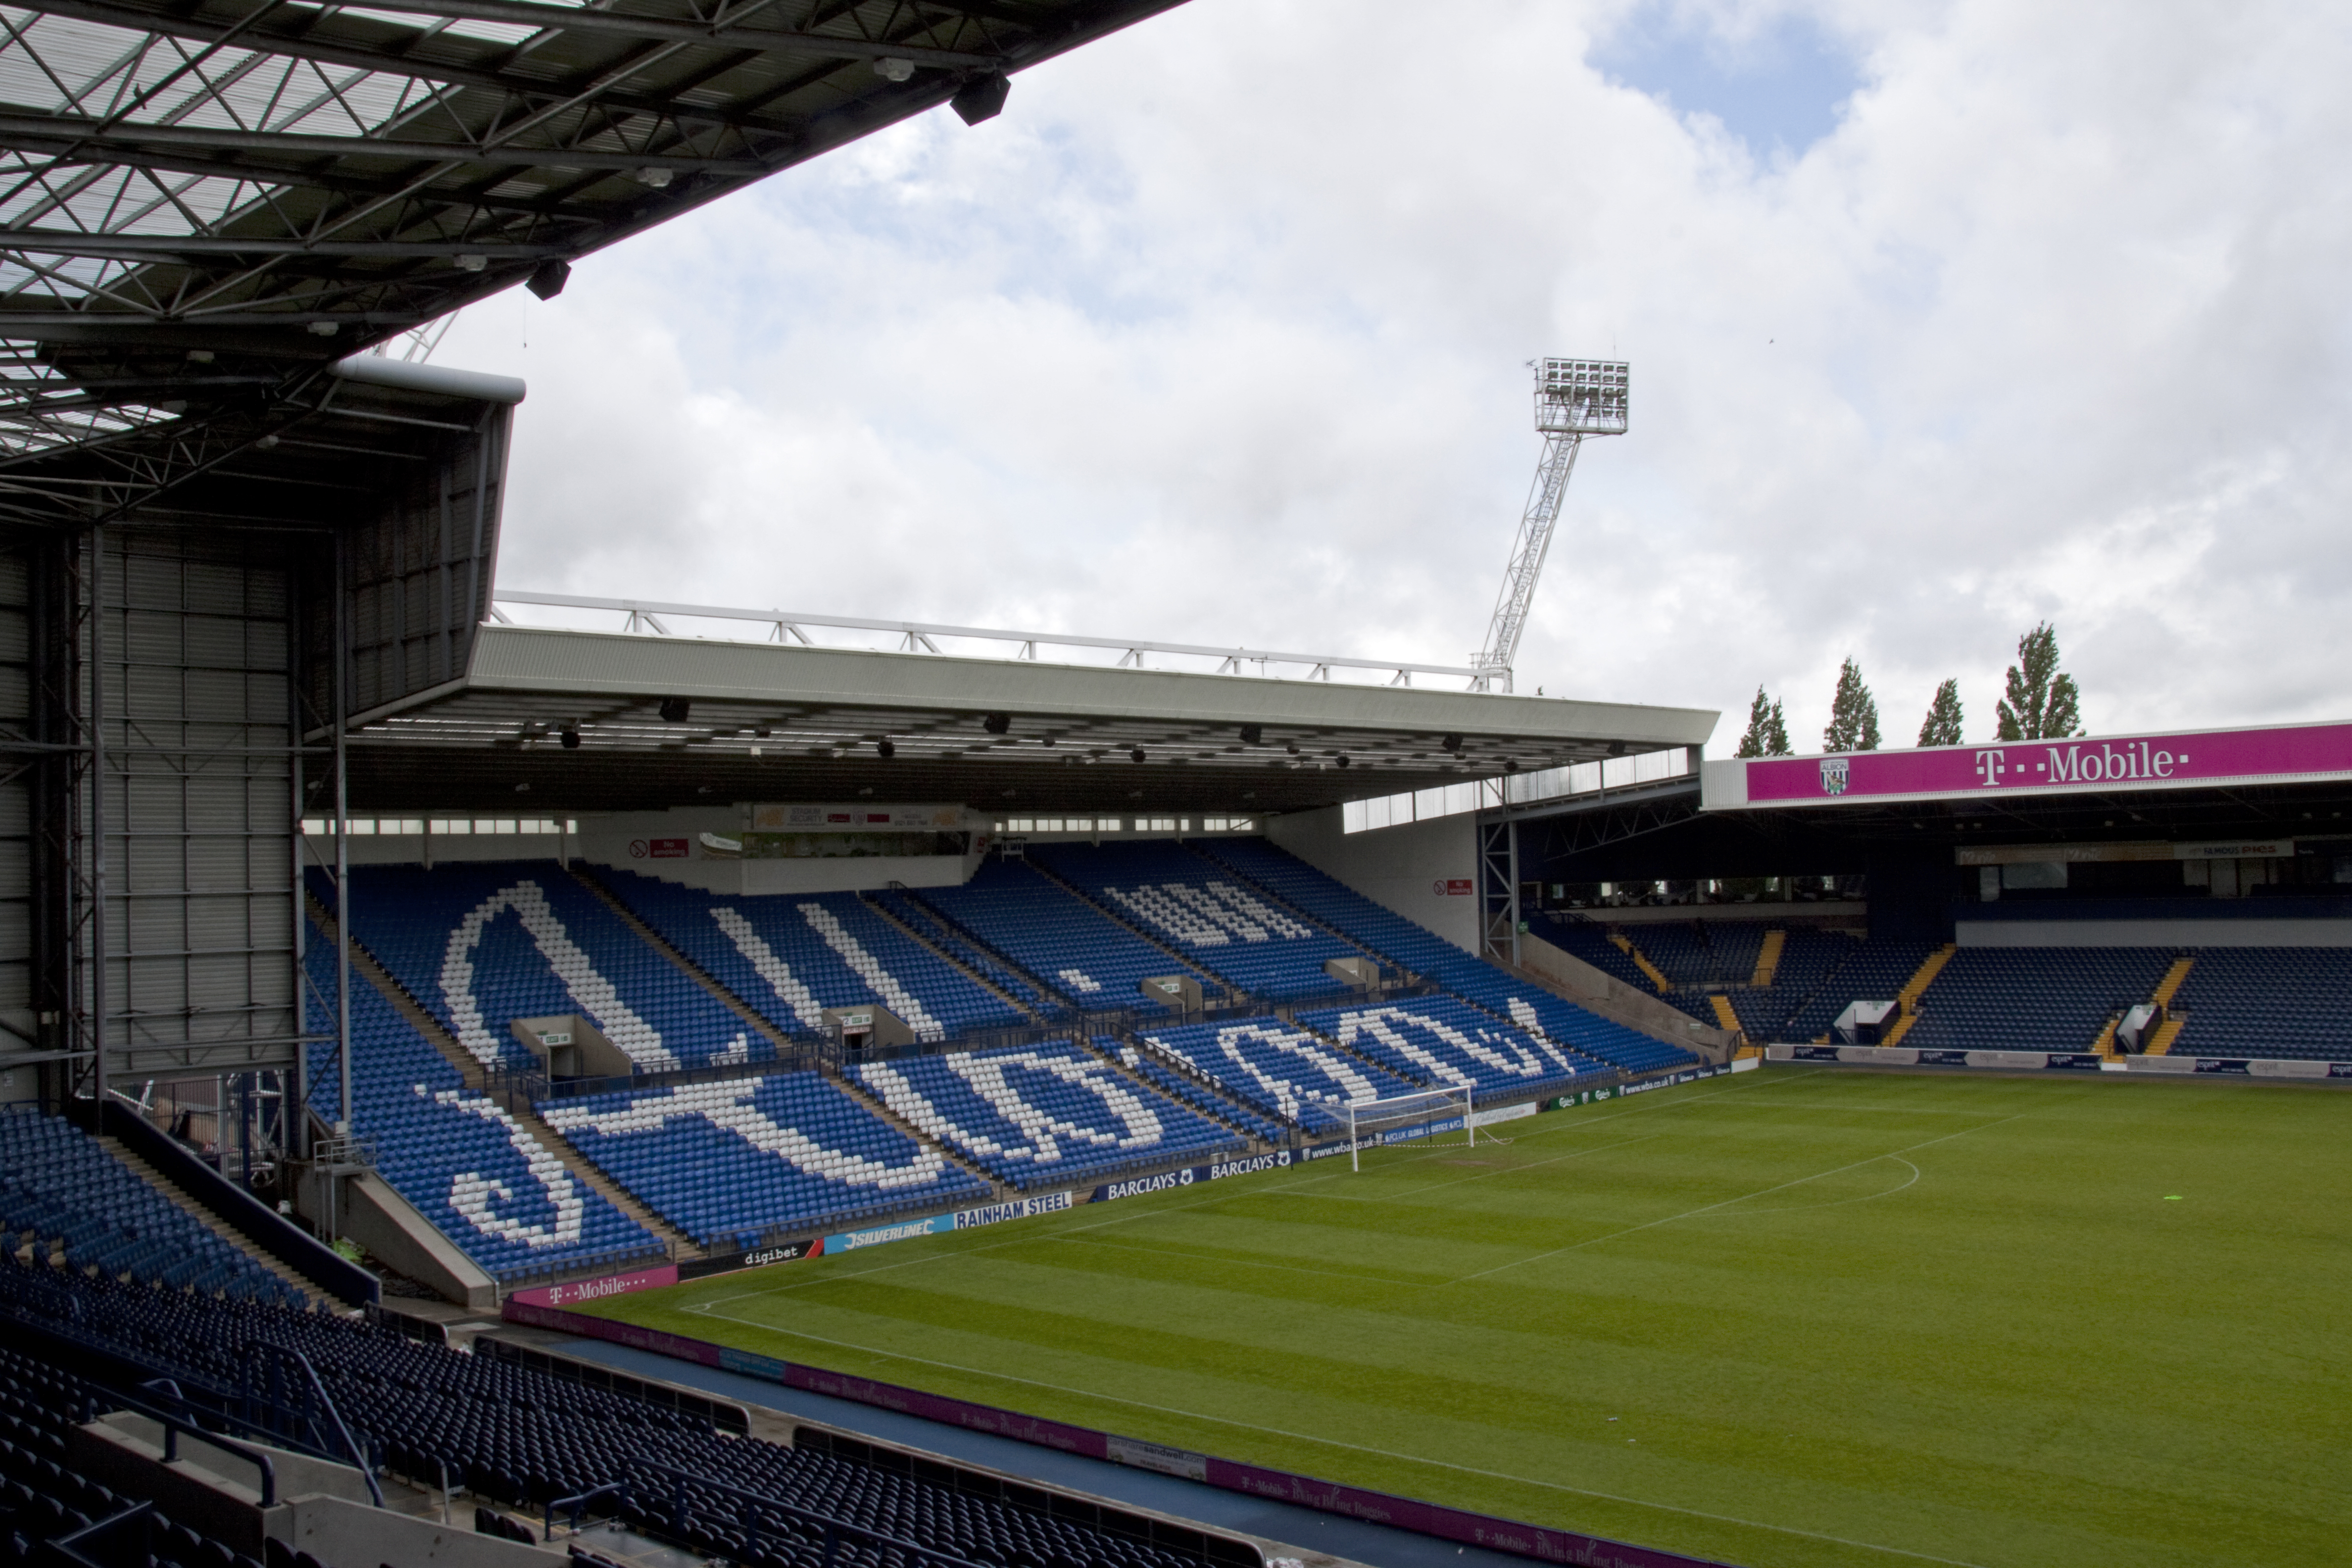 File:The Hawthorns stands.jpg - Wikimedia Commons